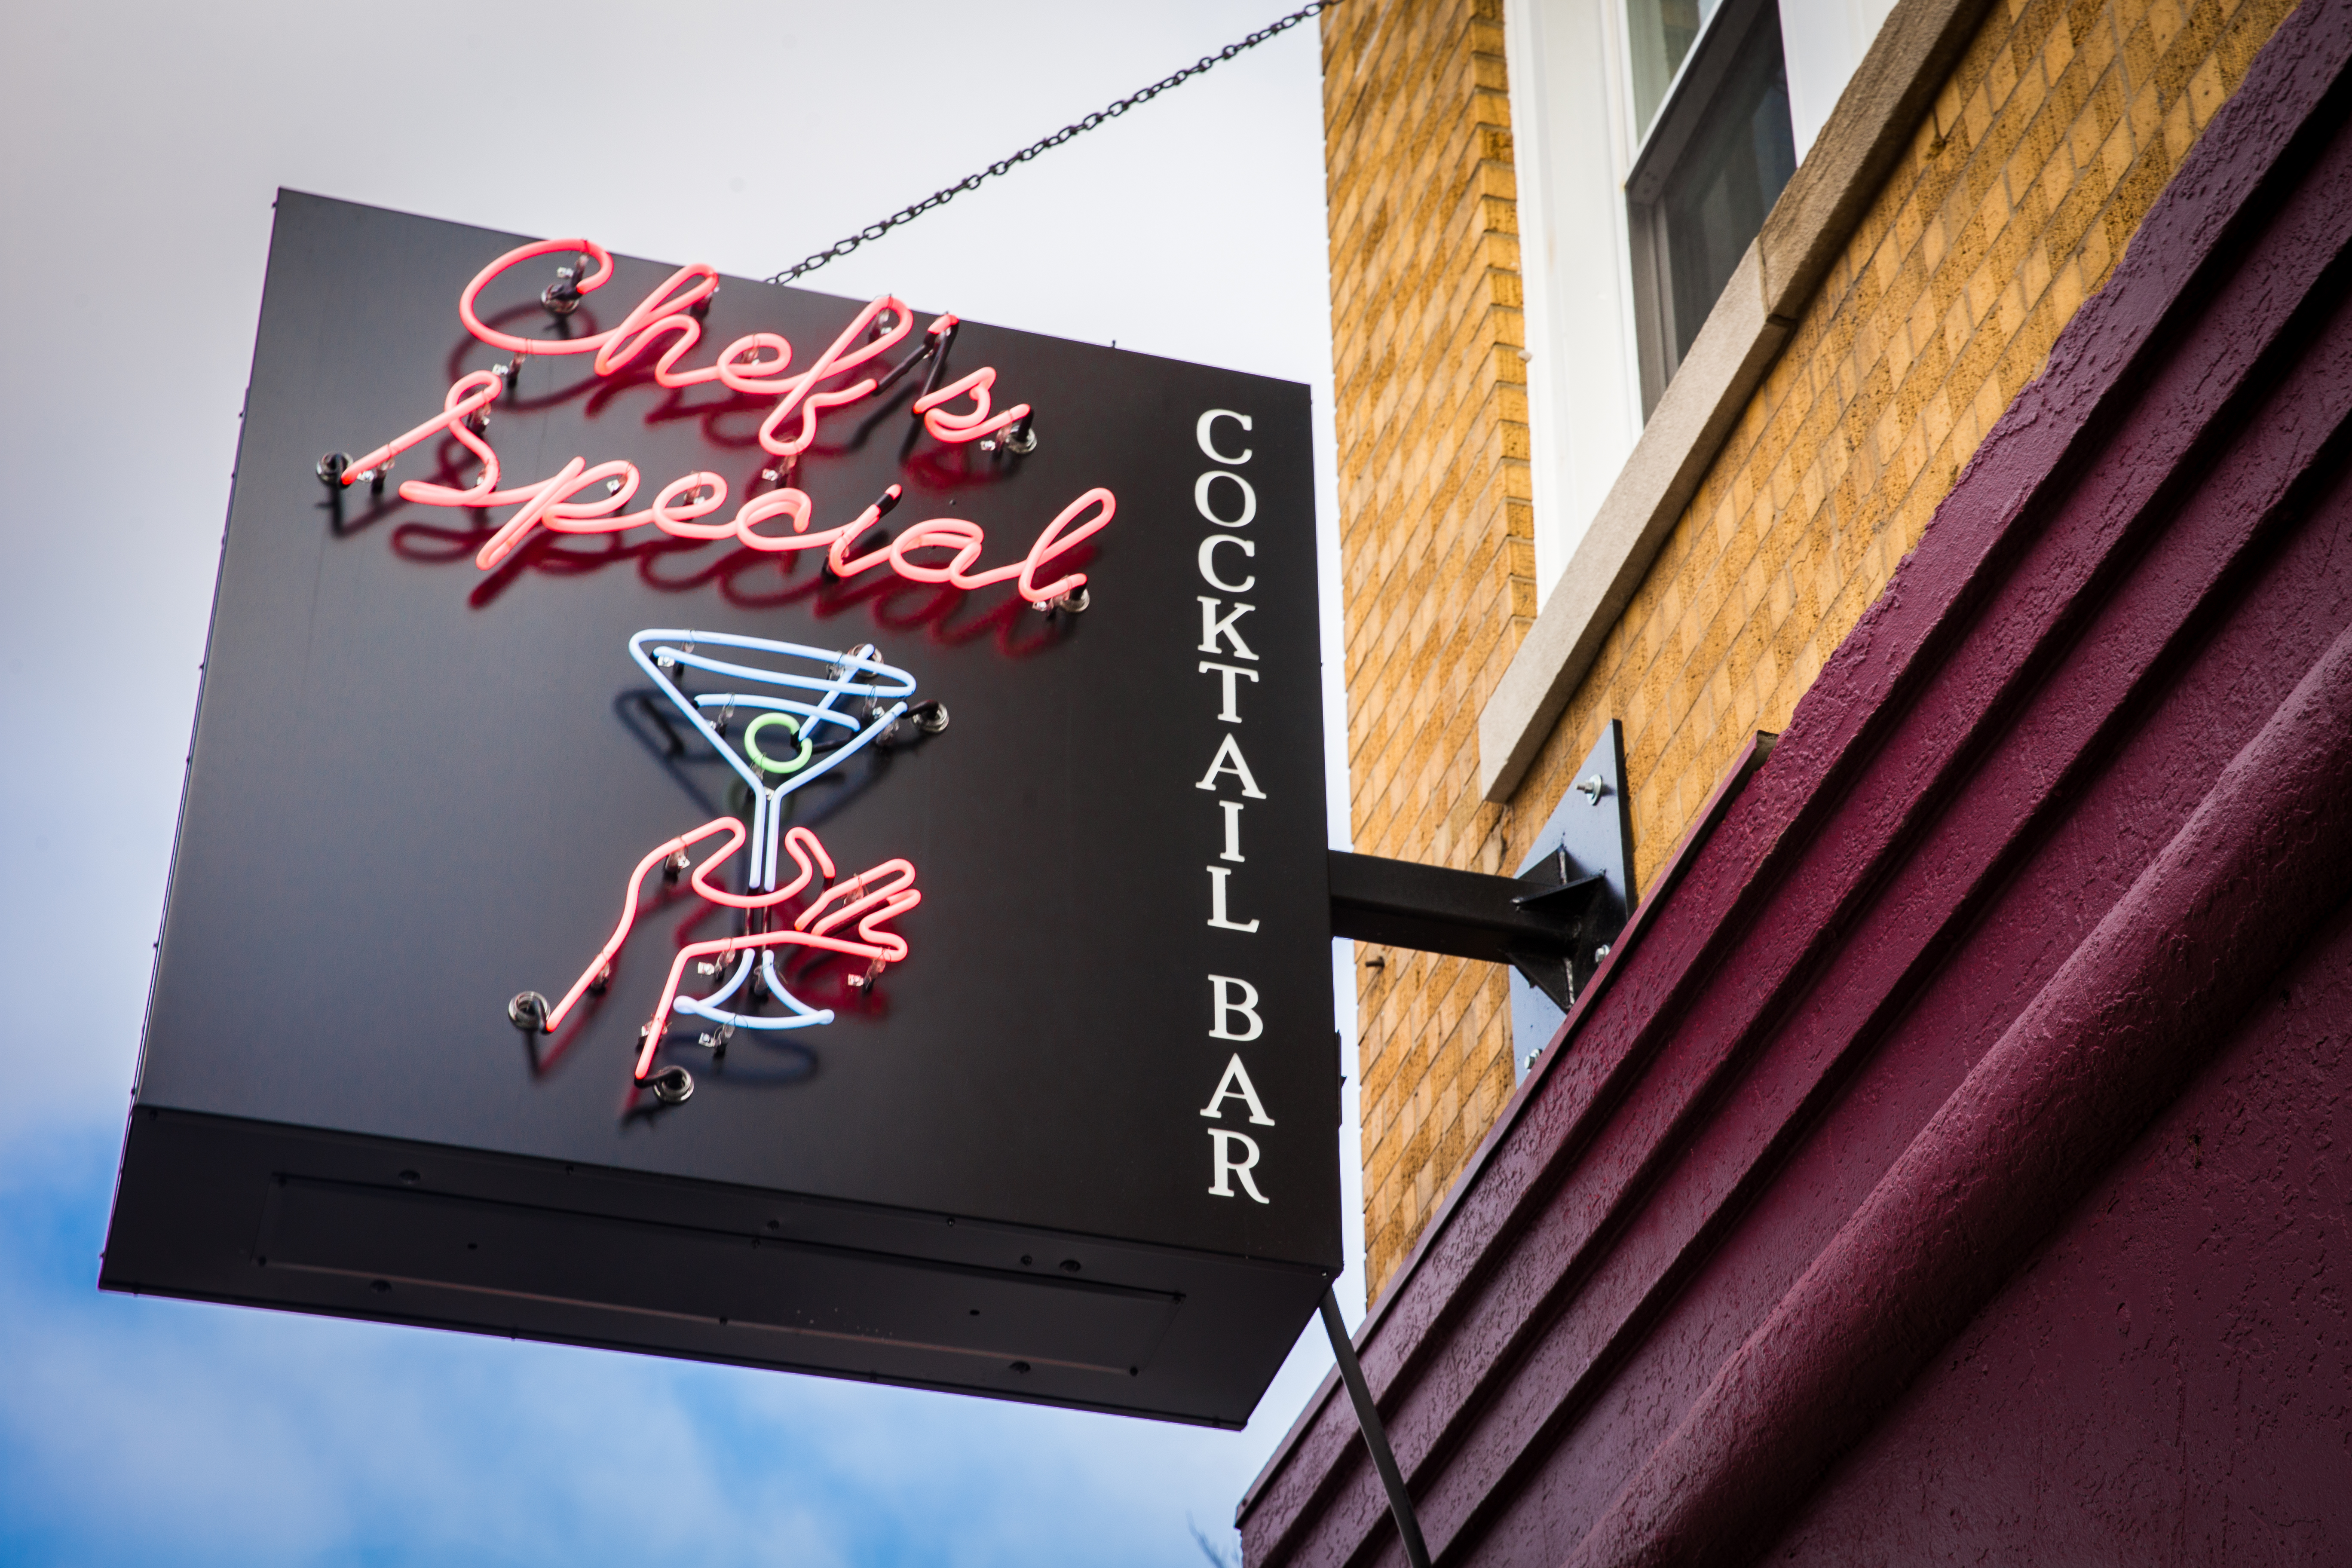 A black neon sign hanging outside a restaurant with a martini glass.